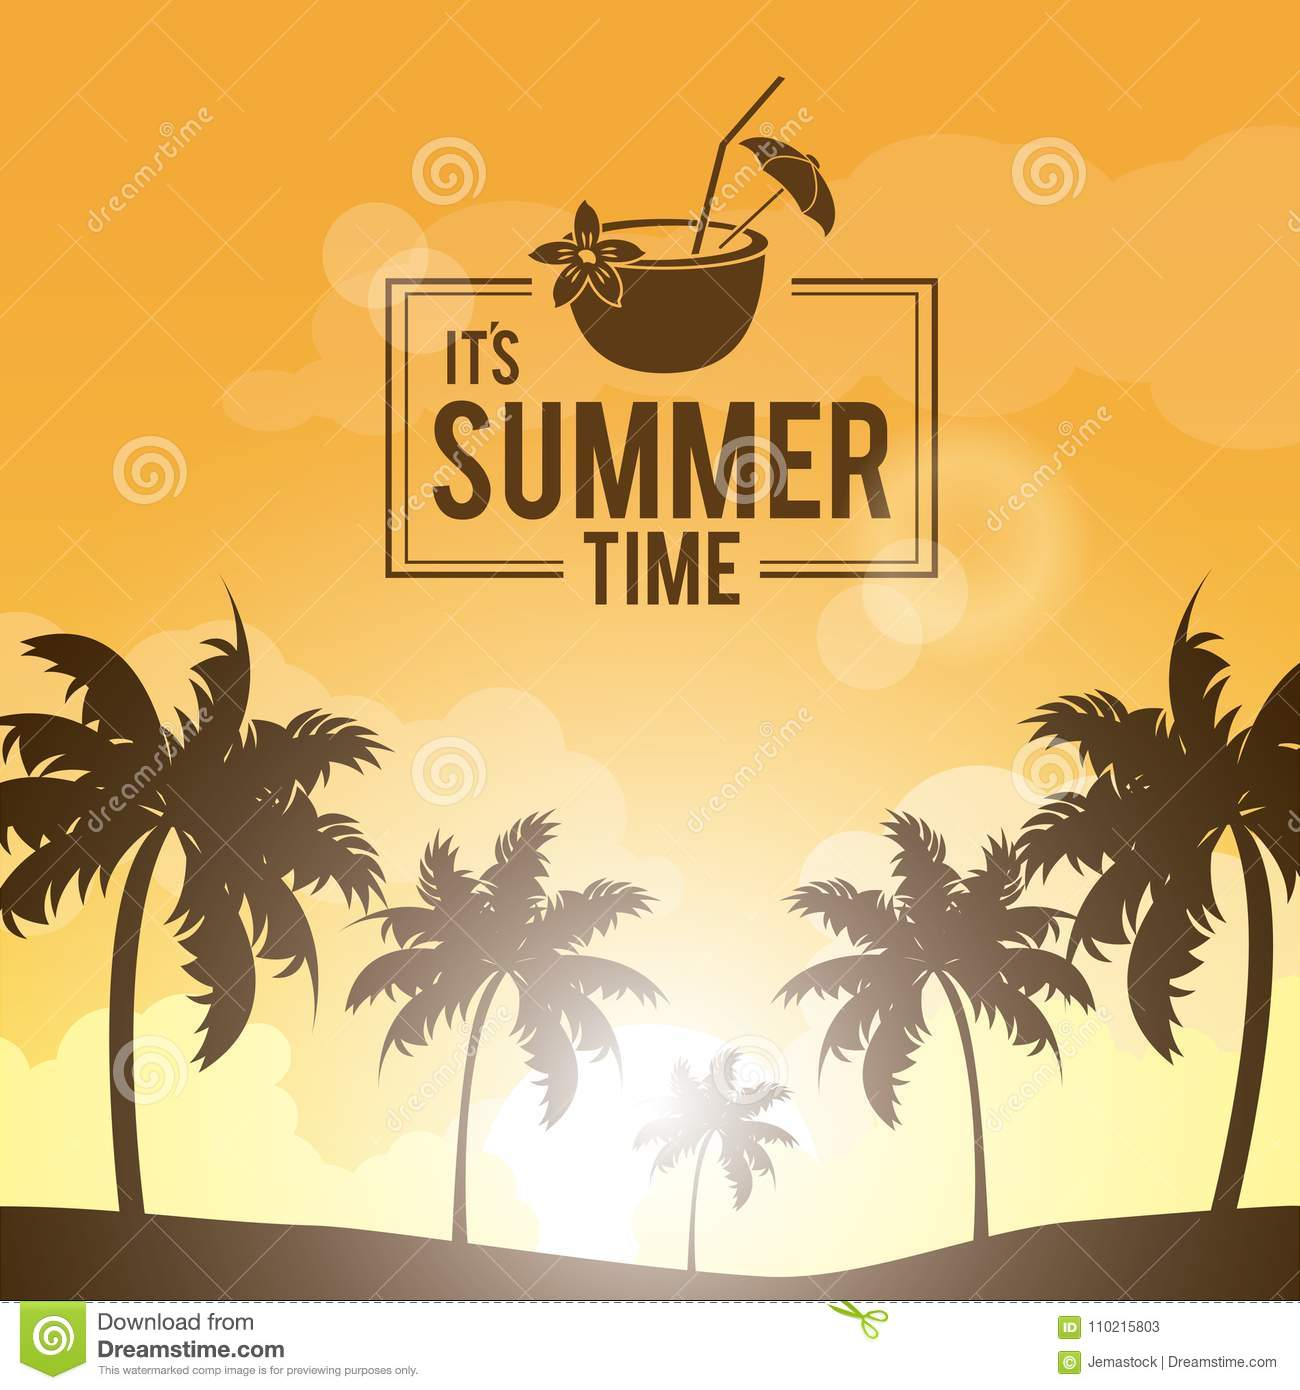 Poster landscape of palm trees on the beach with logo summer time and cocktail coconut